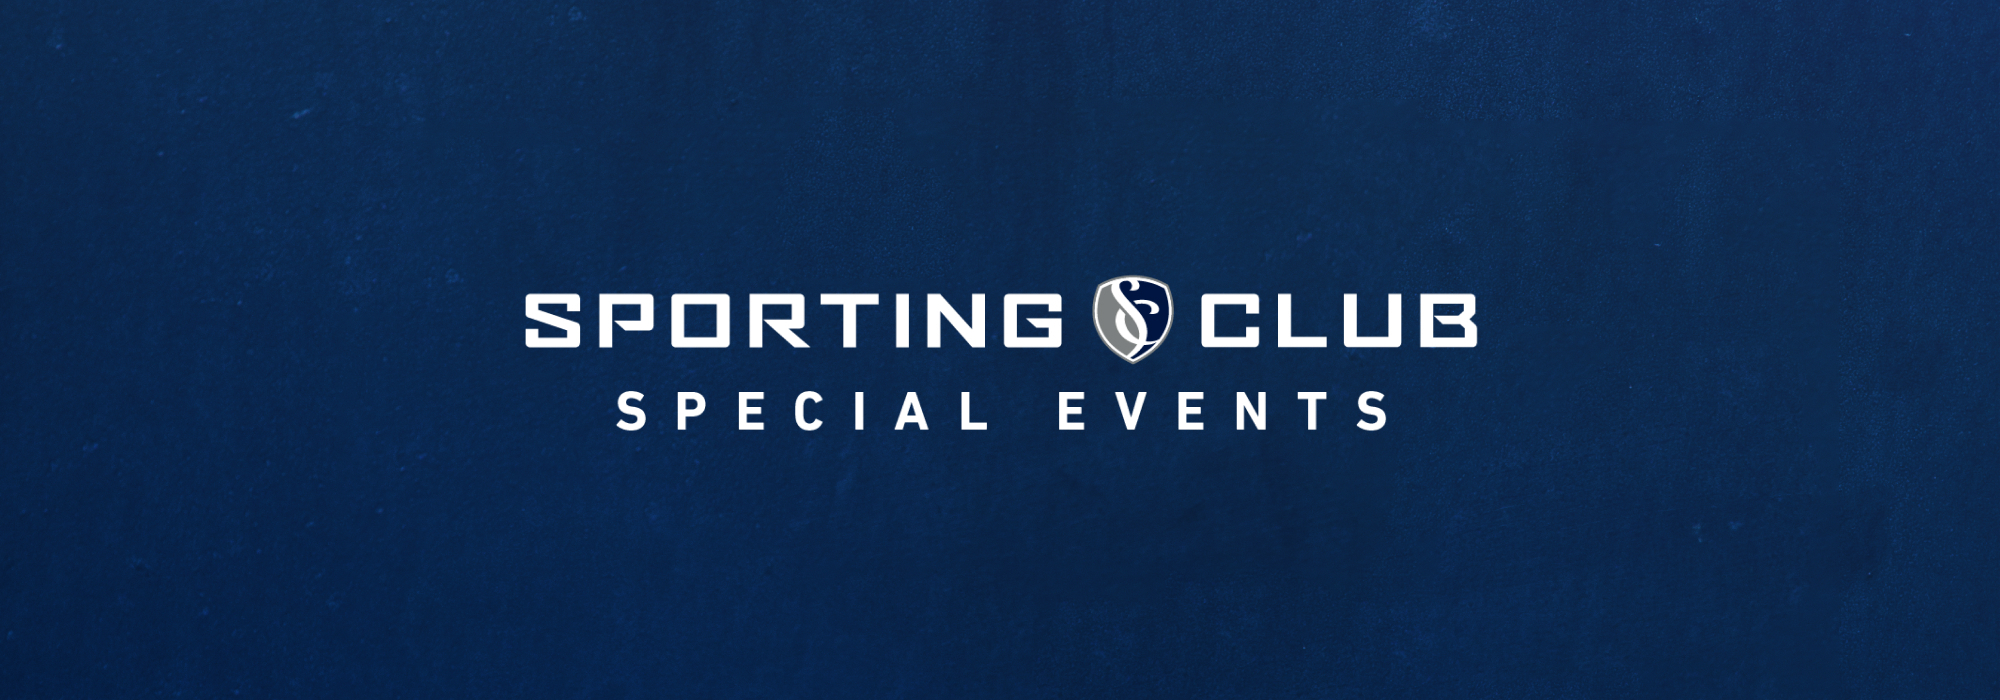 A Sporting Club Special Events live event